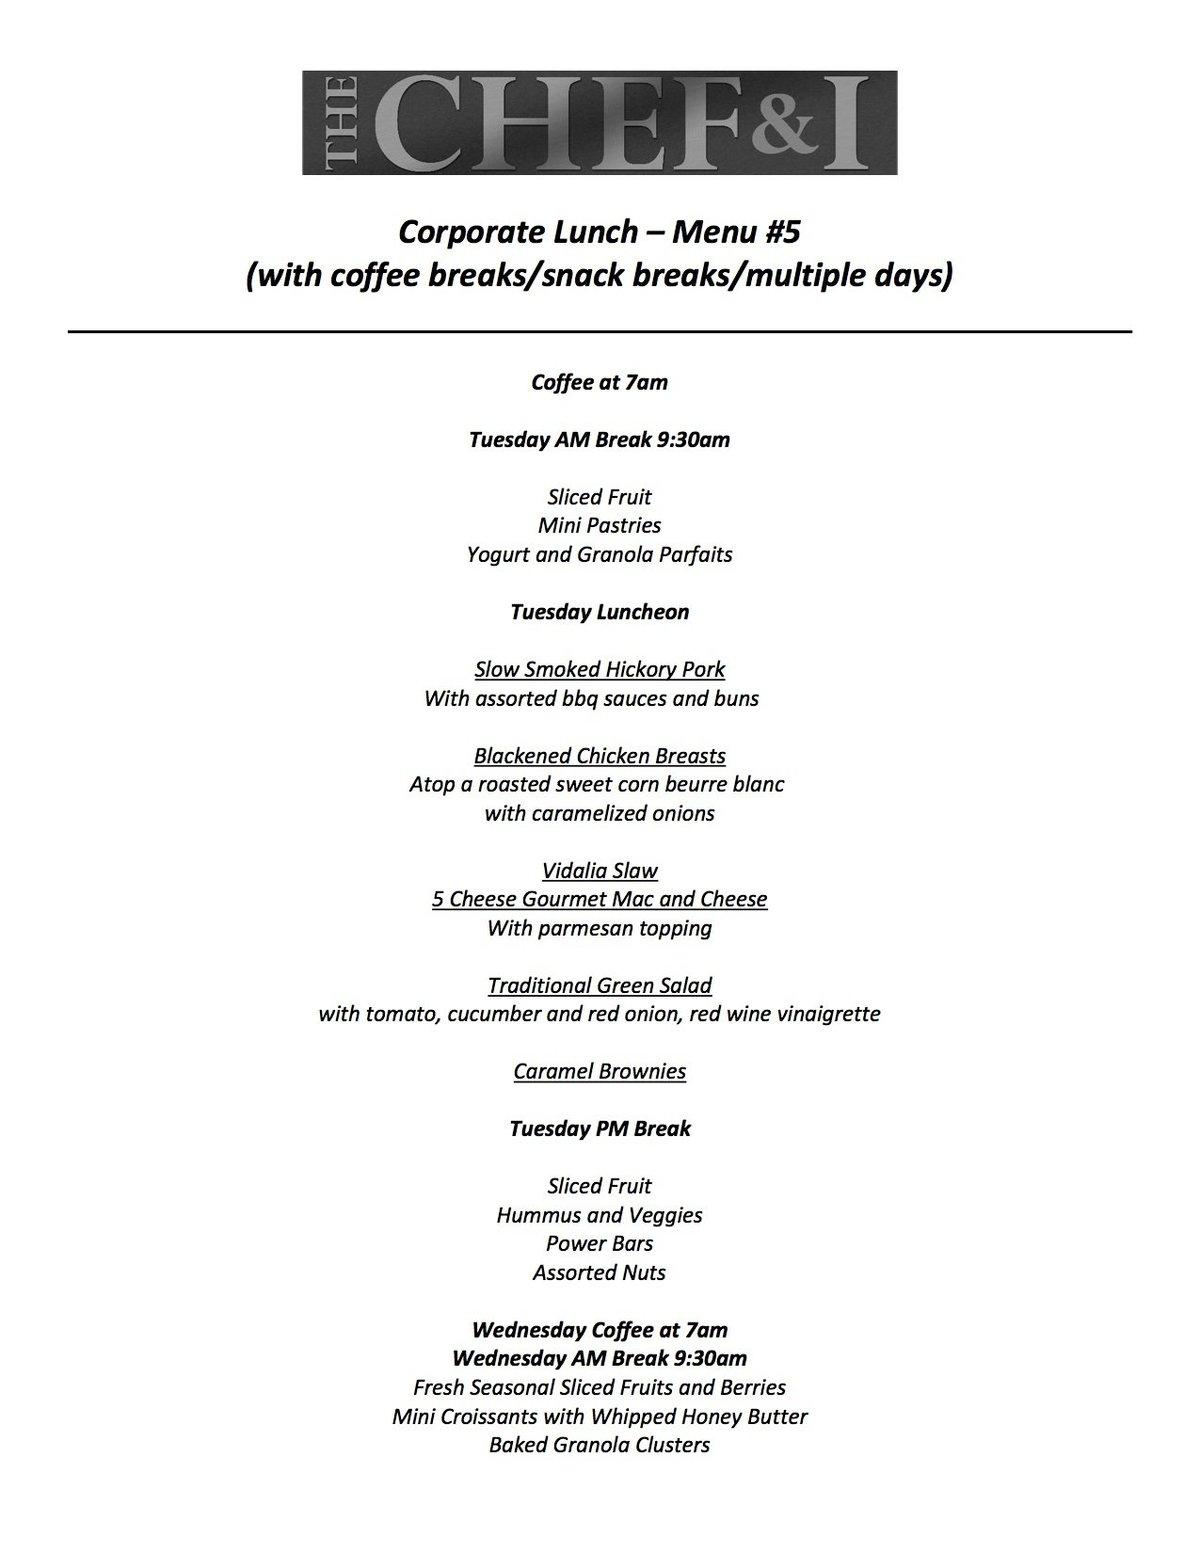 Corporate Lunch Menu 5